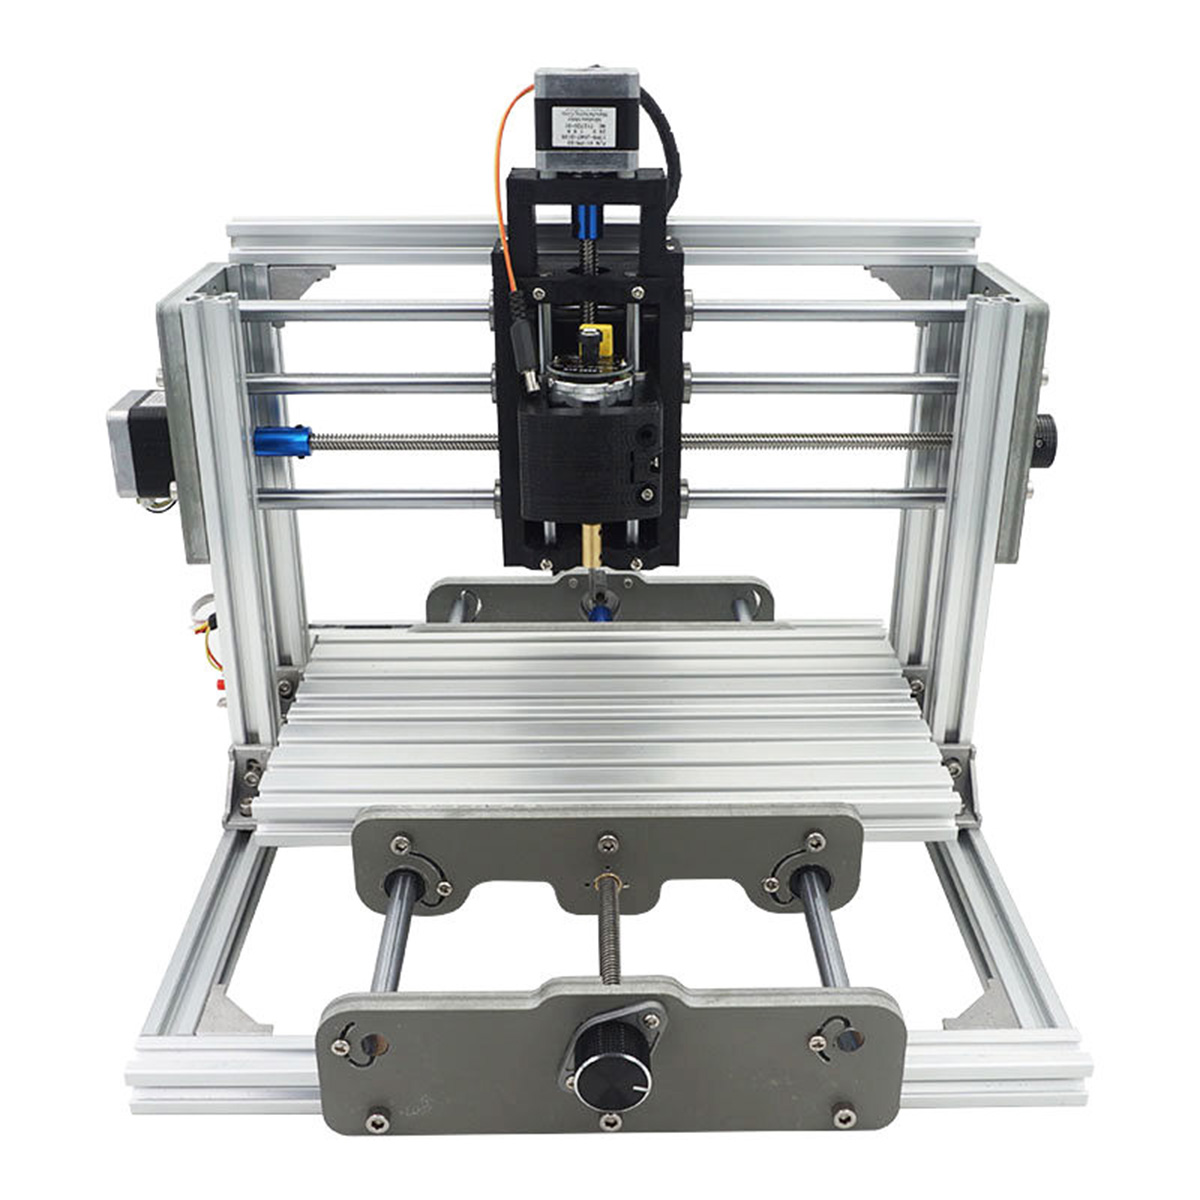 2417 3 Axis Mini DIY CNC Router Wood Craving Milling Engraver Machine with 500mW Laser Module